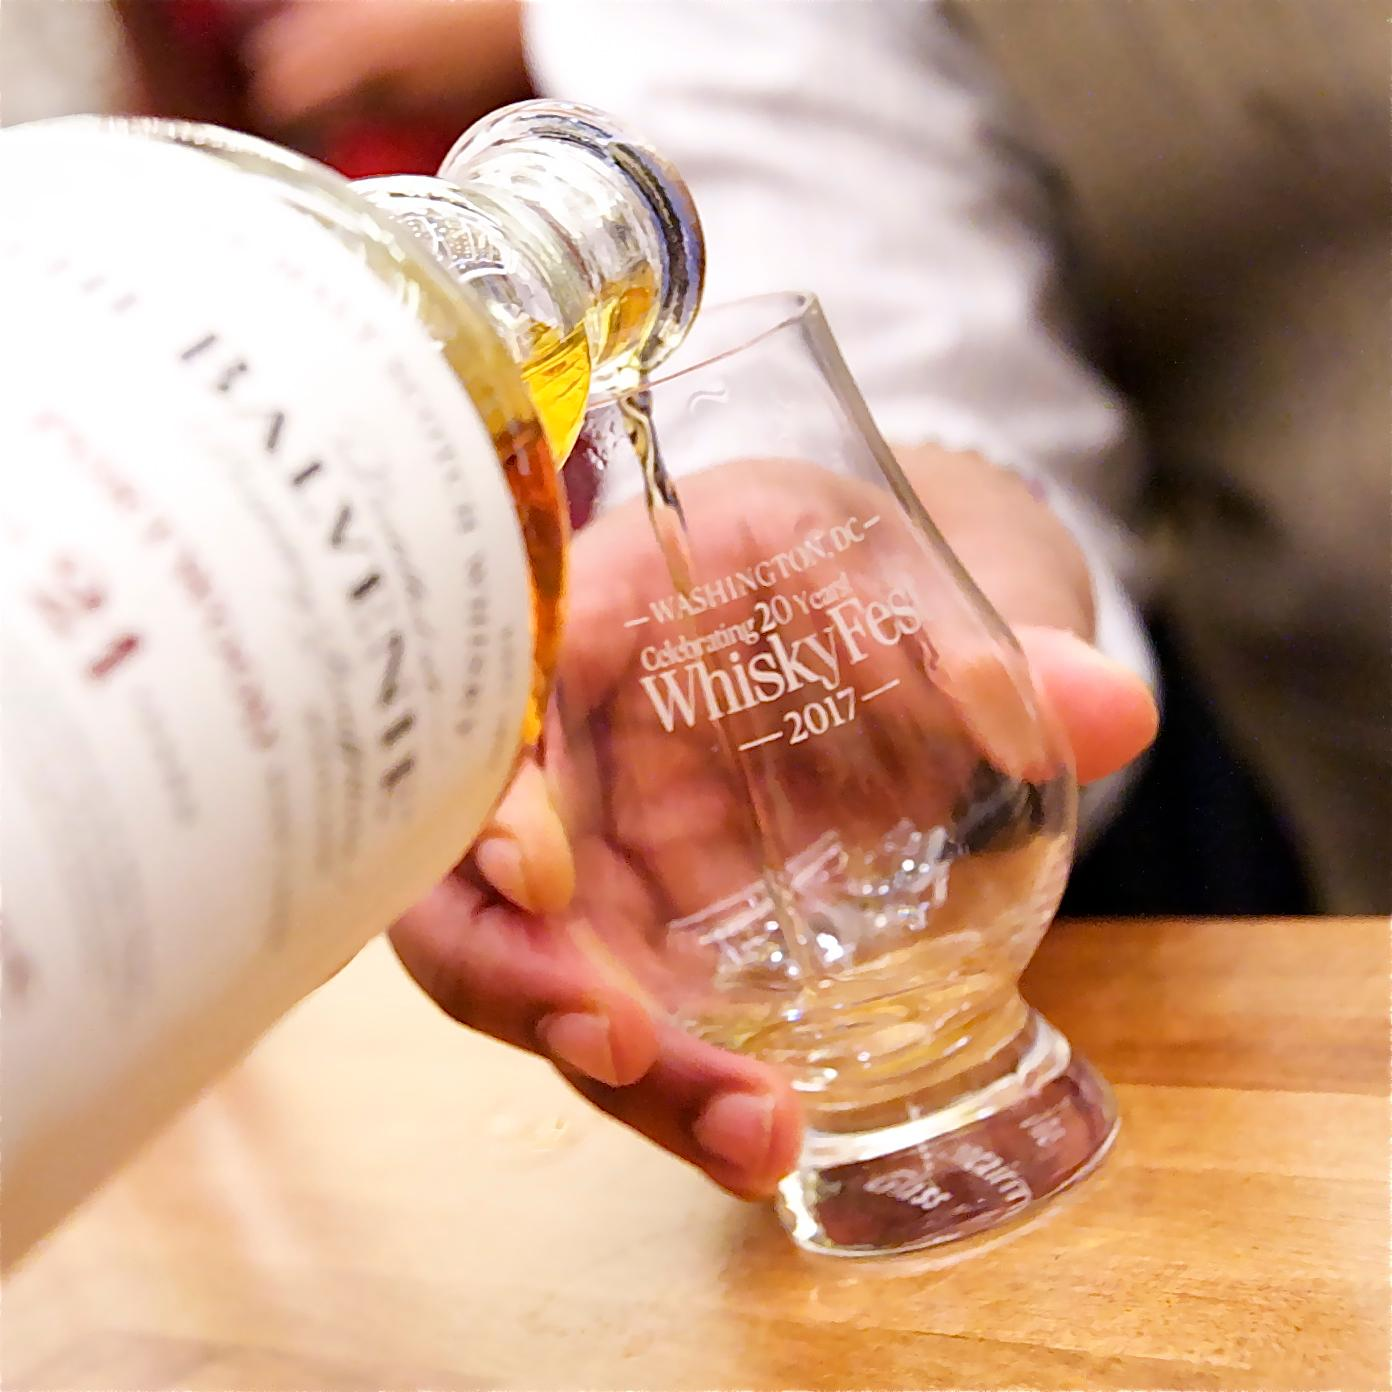 Dram fans, get excited! WhiskyFest -- the leading whisk(e)y festival in North America -- returns to Washington, D.C. on April 17! (Image: Courtesy WhiskeyFest)